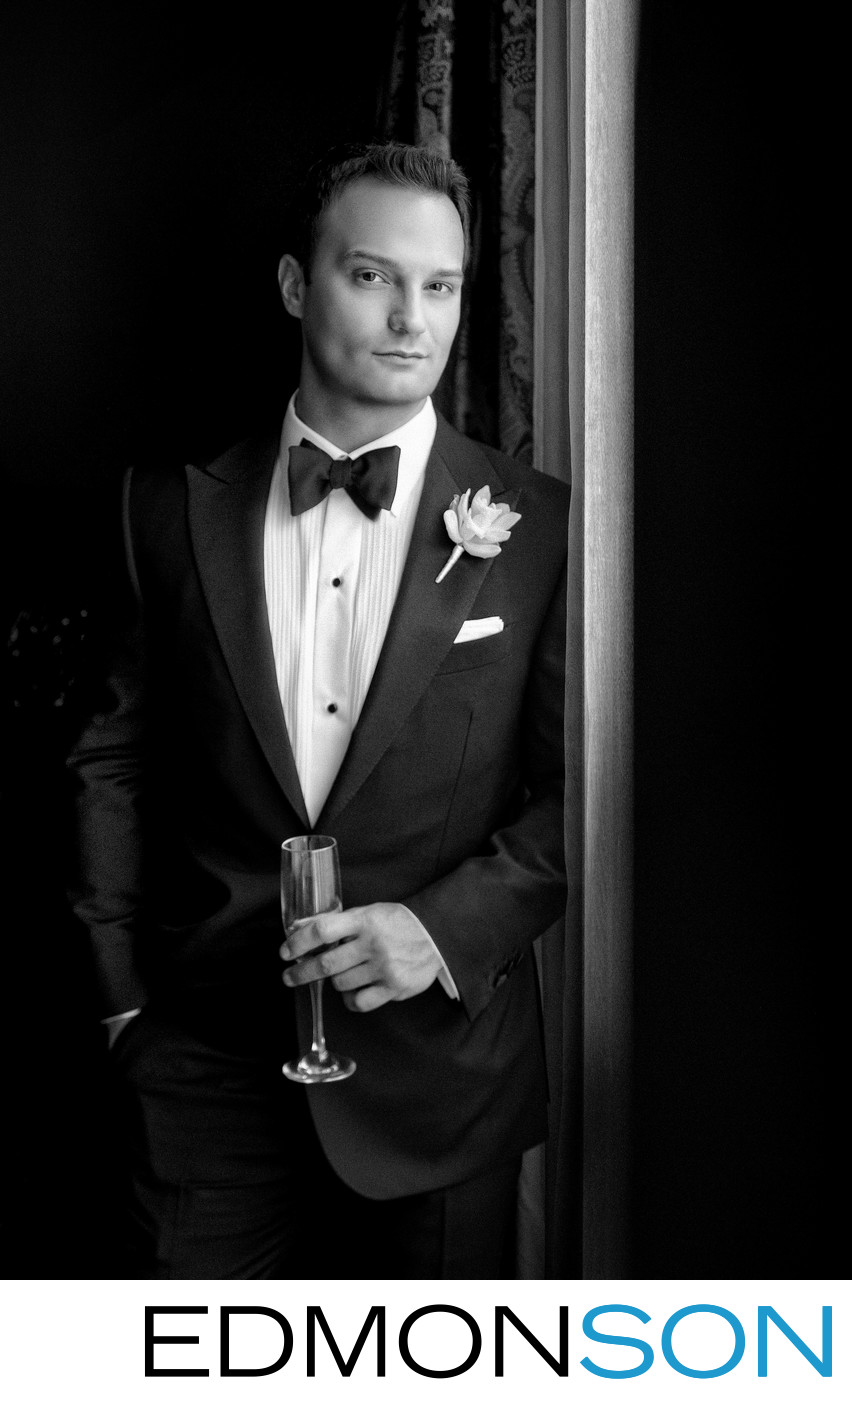 Black And White Groom Holds Glass In Portrait